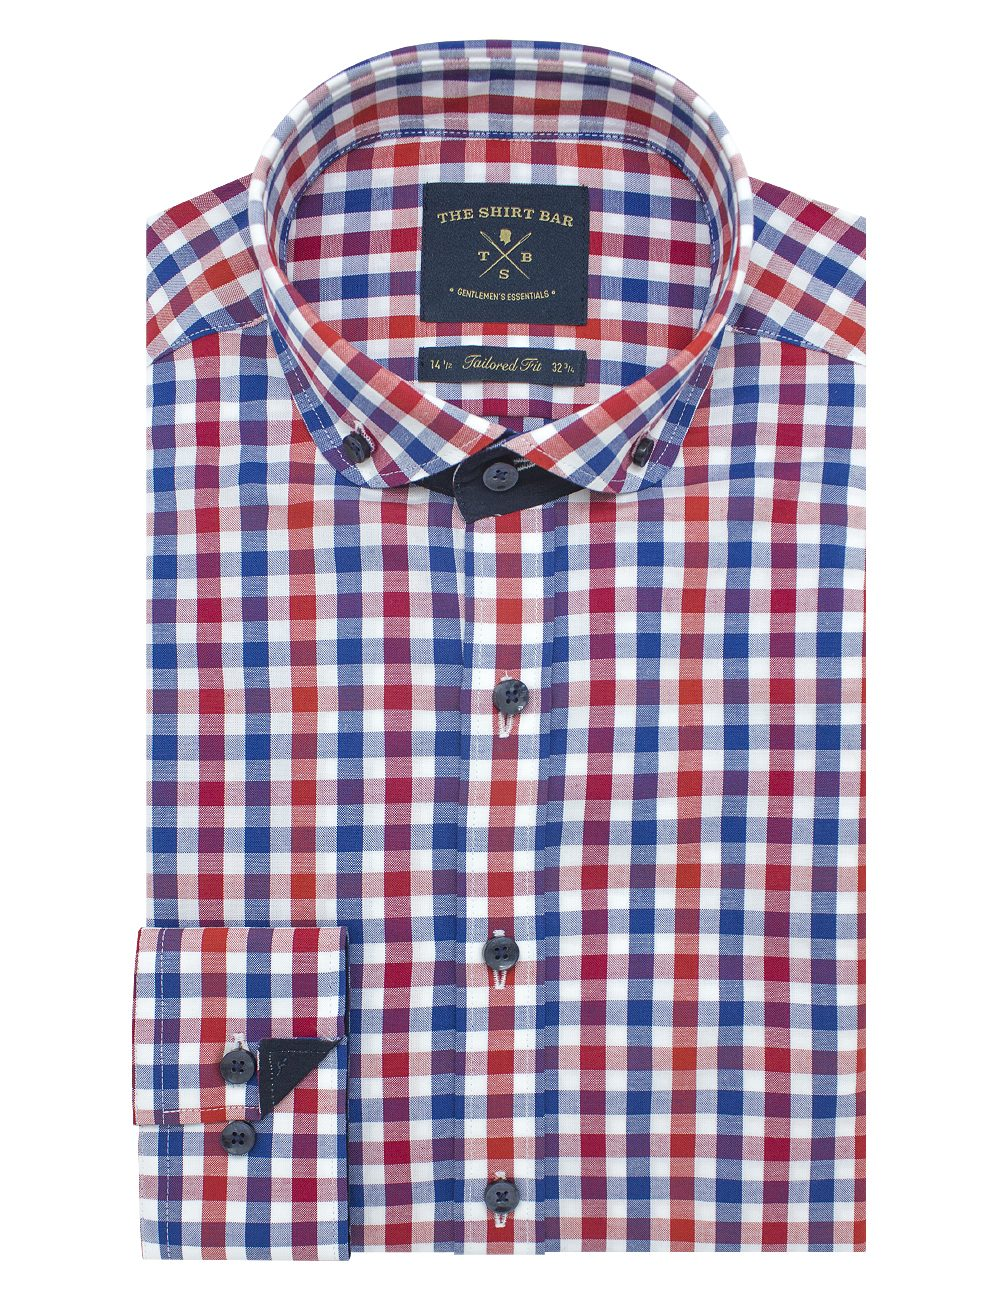 Tri-Color Checks Slim / Tailored Fit Button Down Long Sleeve Shirt - TF7E1.19